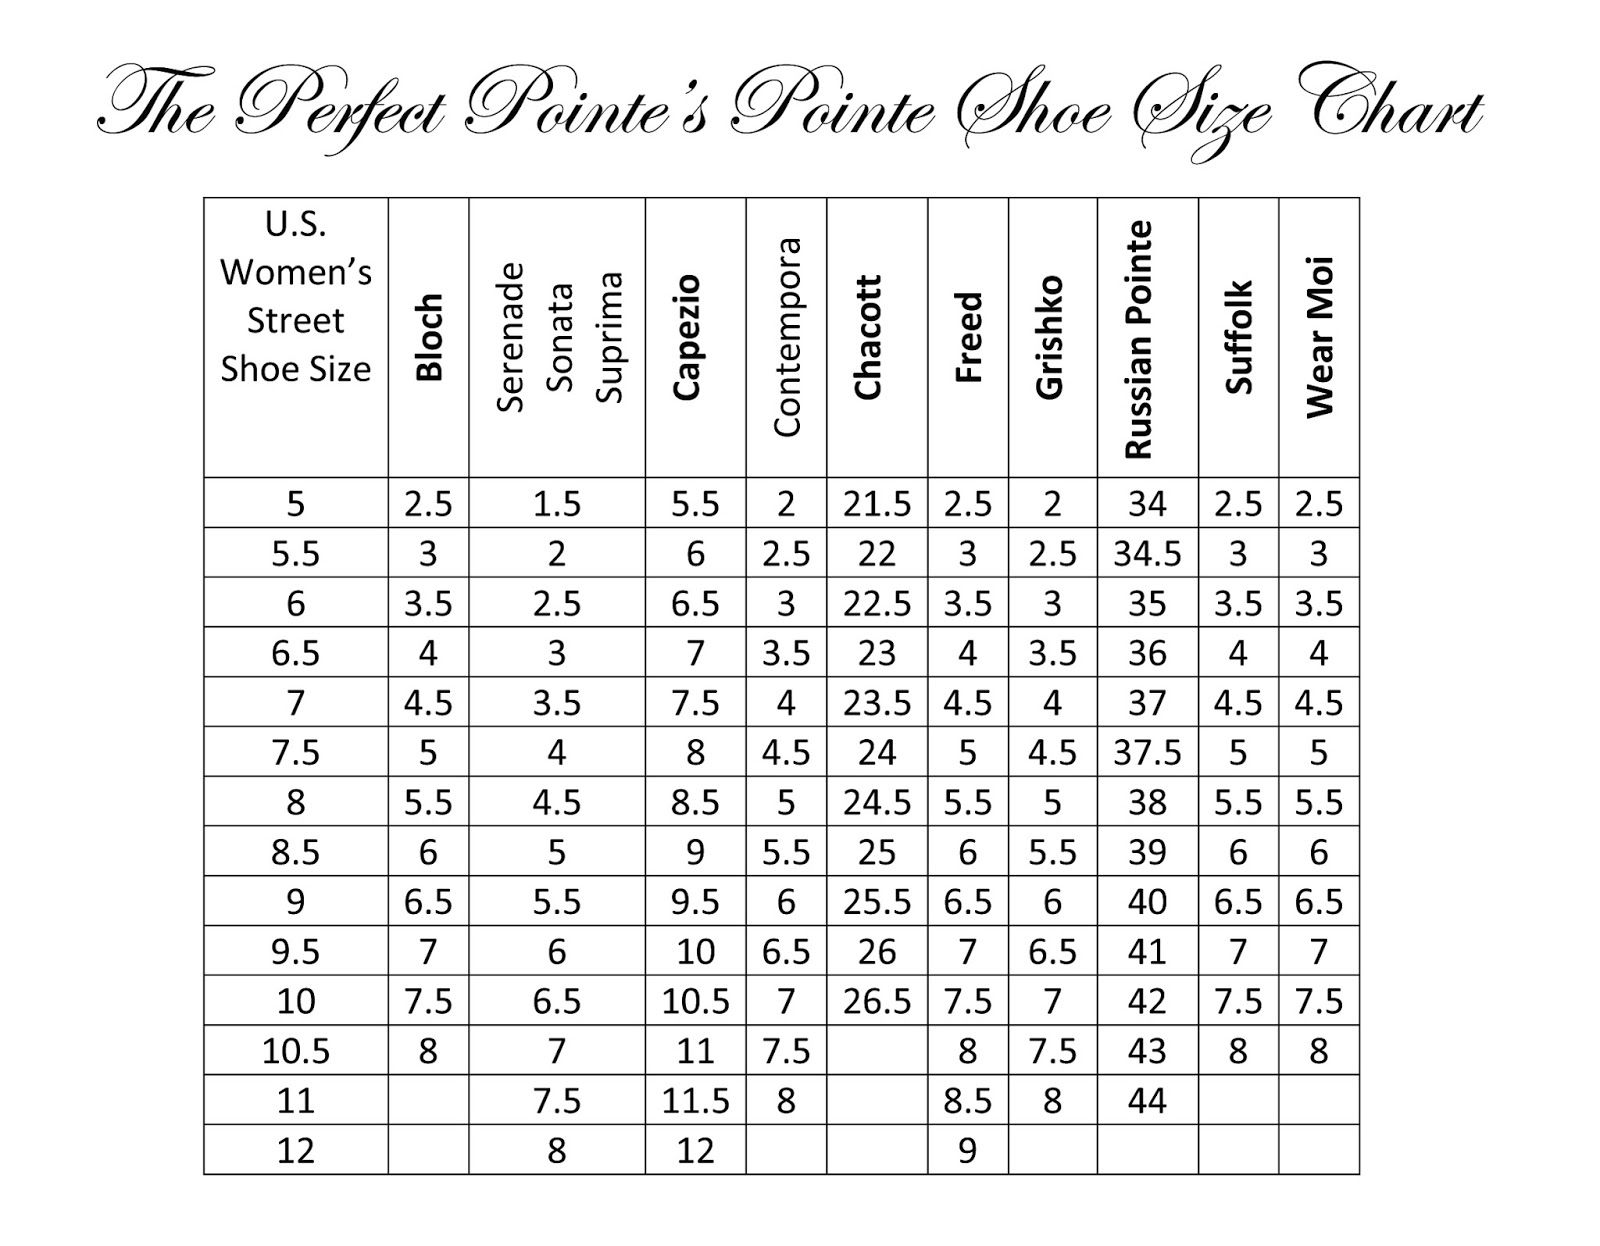 Bloch Ballet Shoe Size Chart.Pointe Ballet Shoe Sizing Guide For The Top Brands Dance